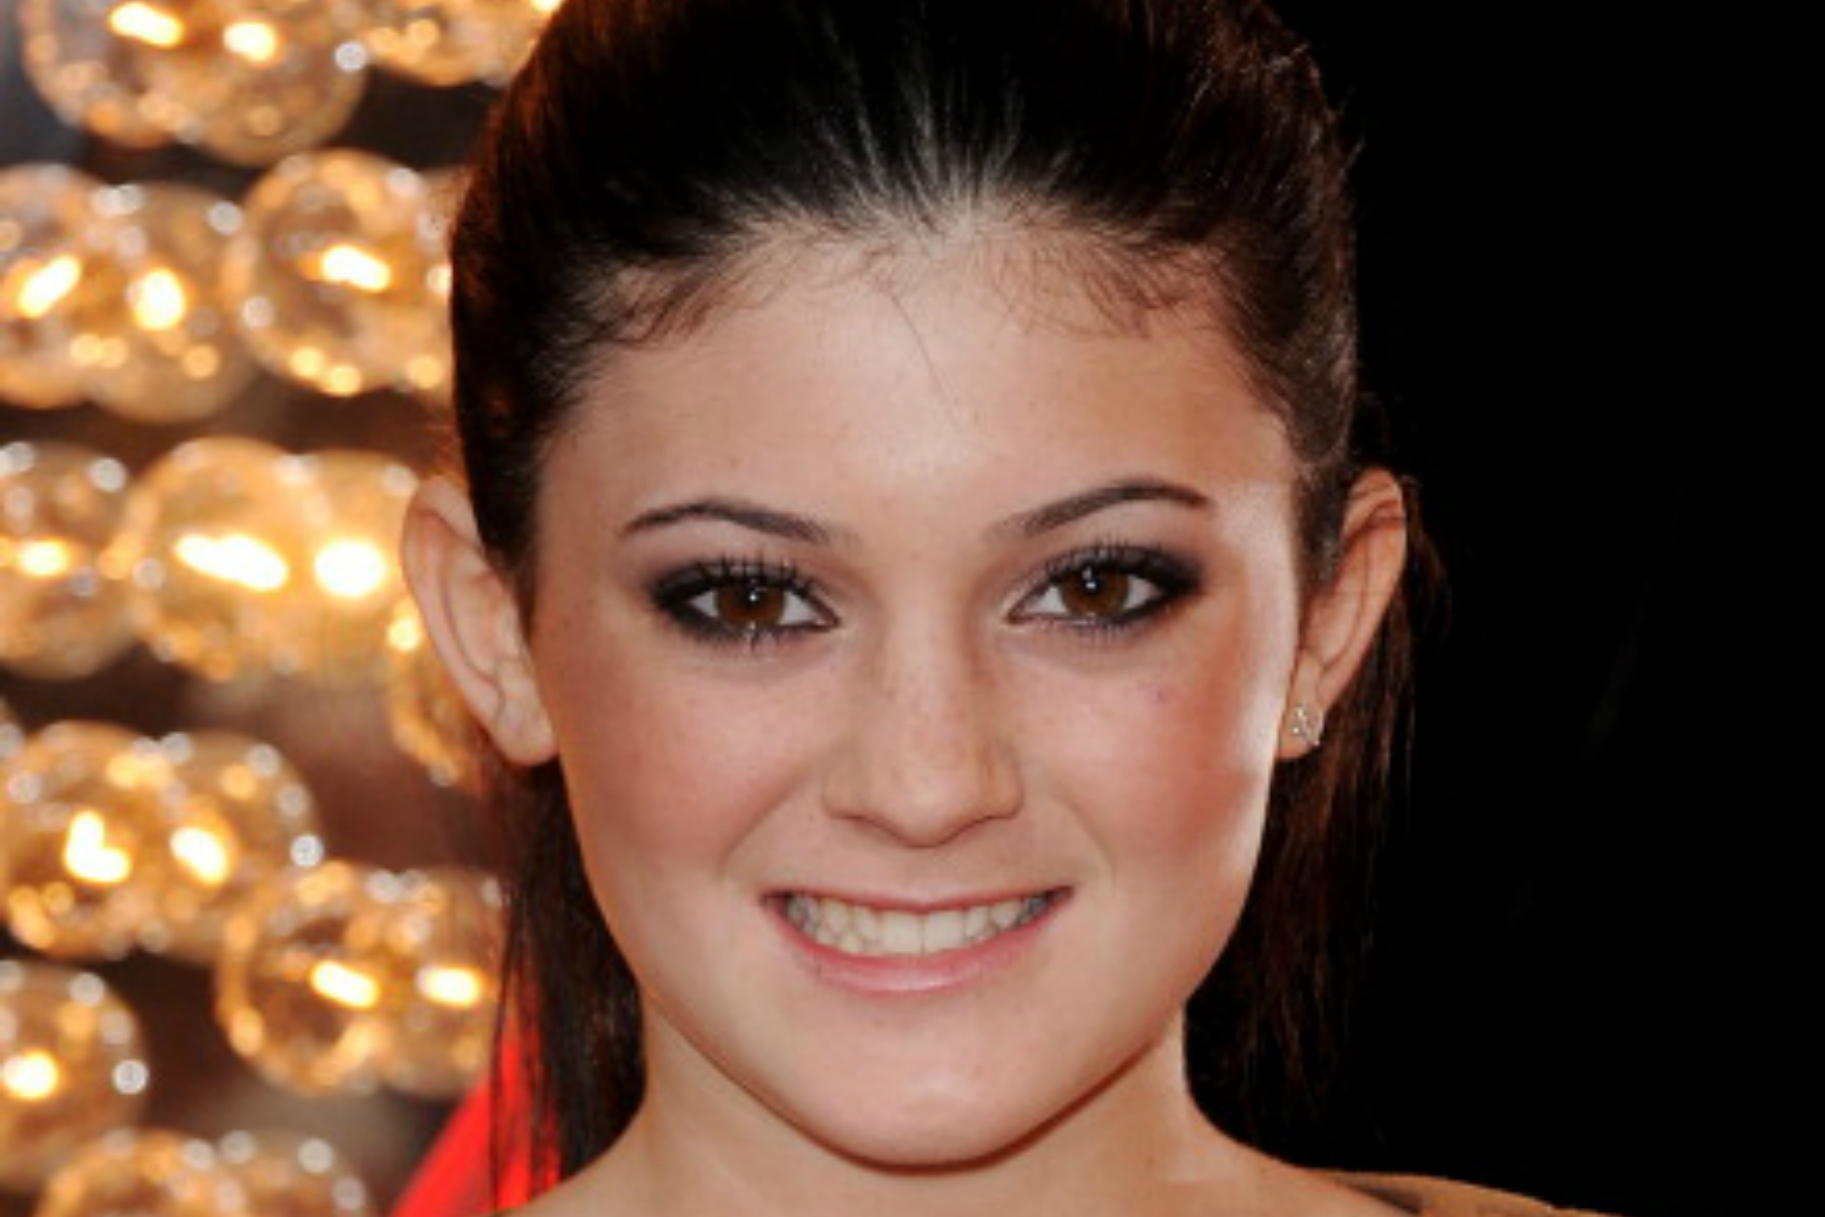 8 Photos Of Kylie Jenner That Are Totally Unrecognizable Very Real